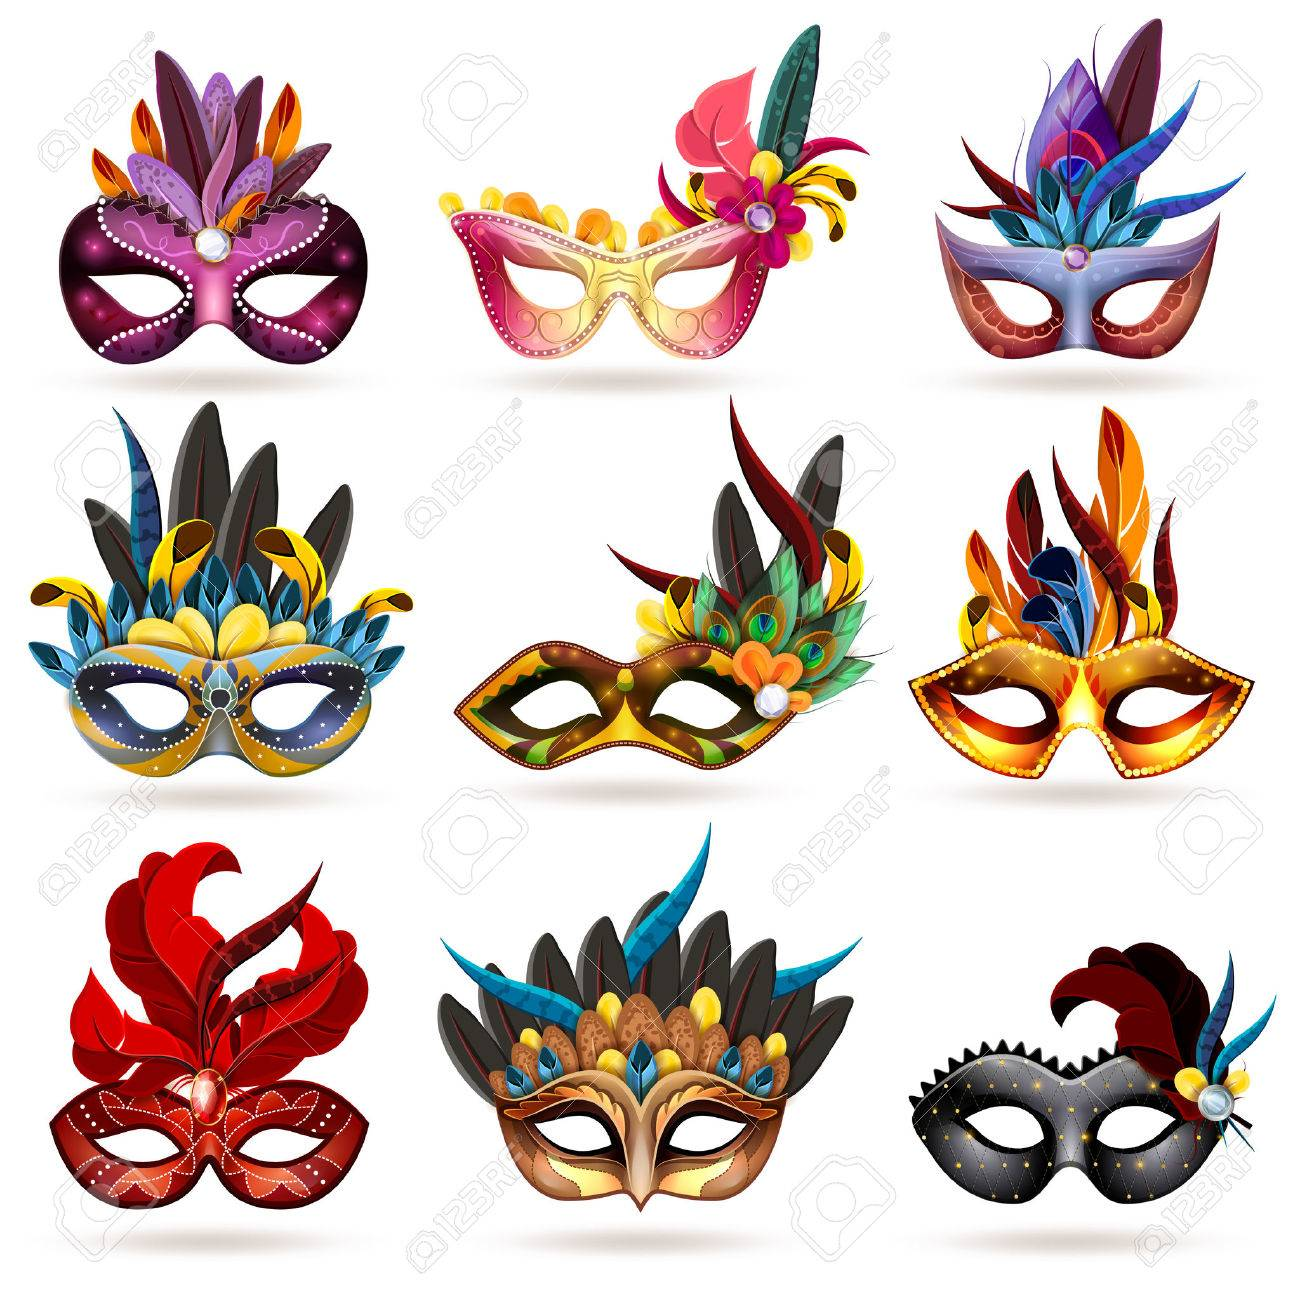 Mask realistic icons set with feathers and jewels isolated vector illustration Stock Vector - 51757197